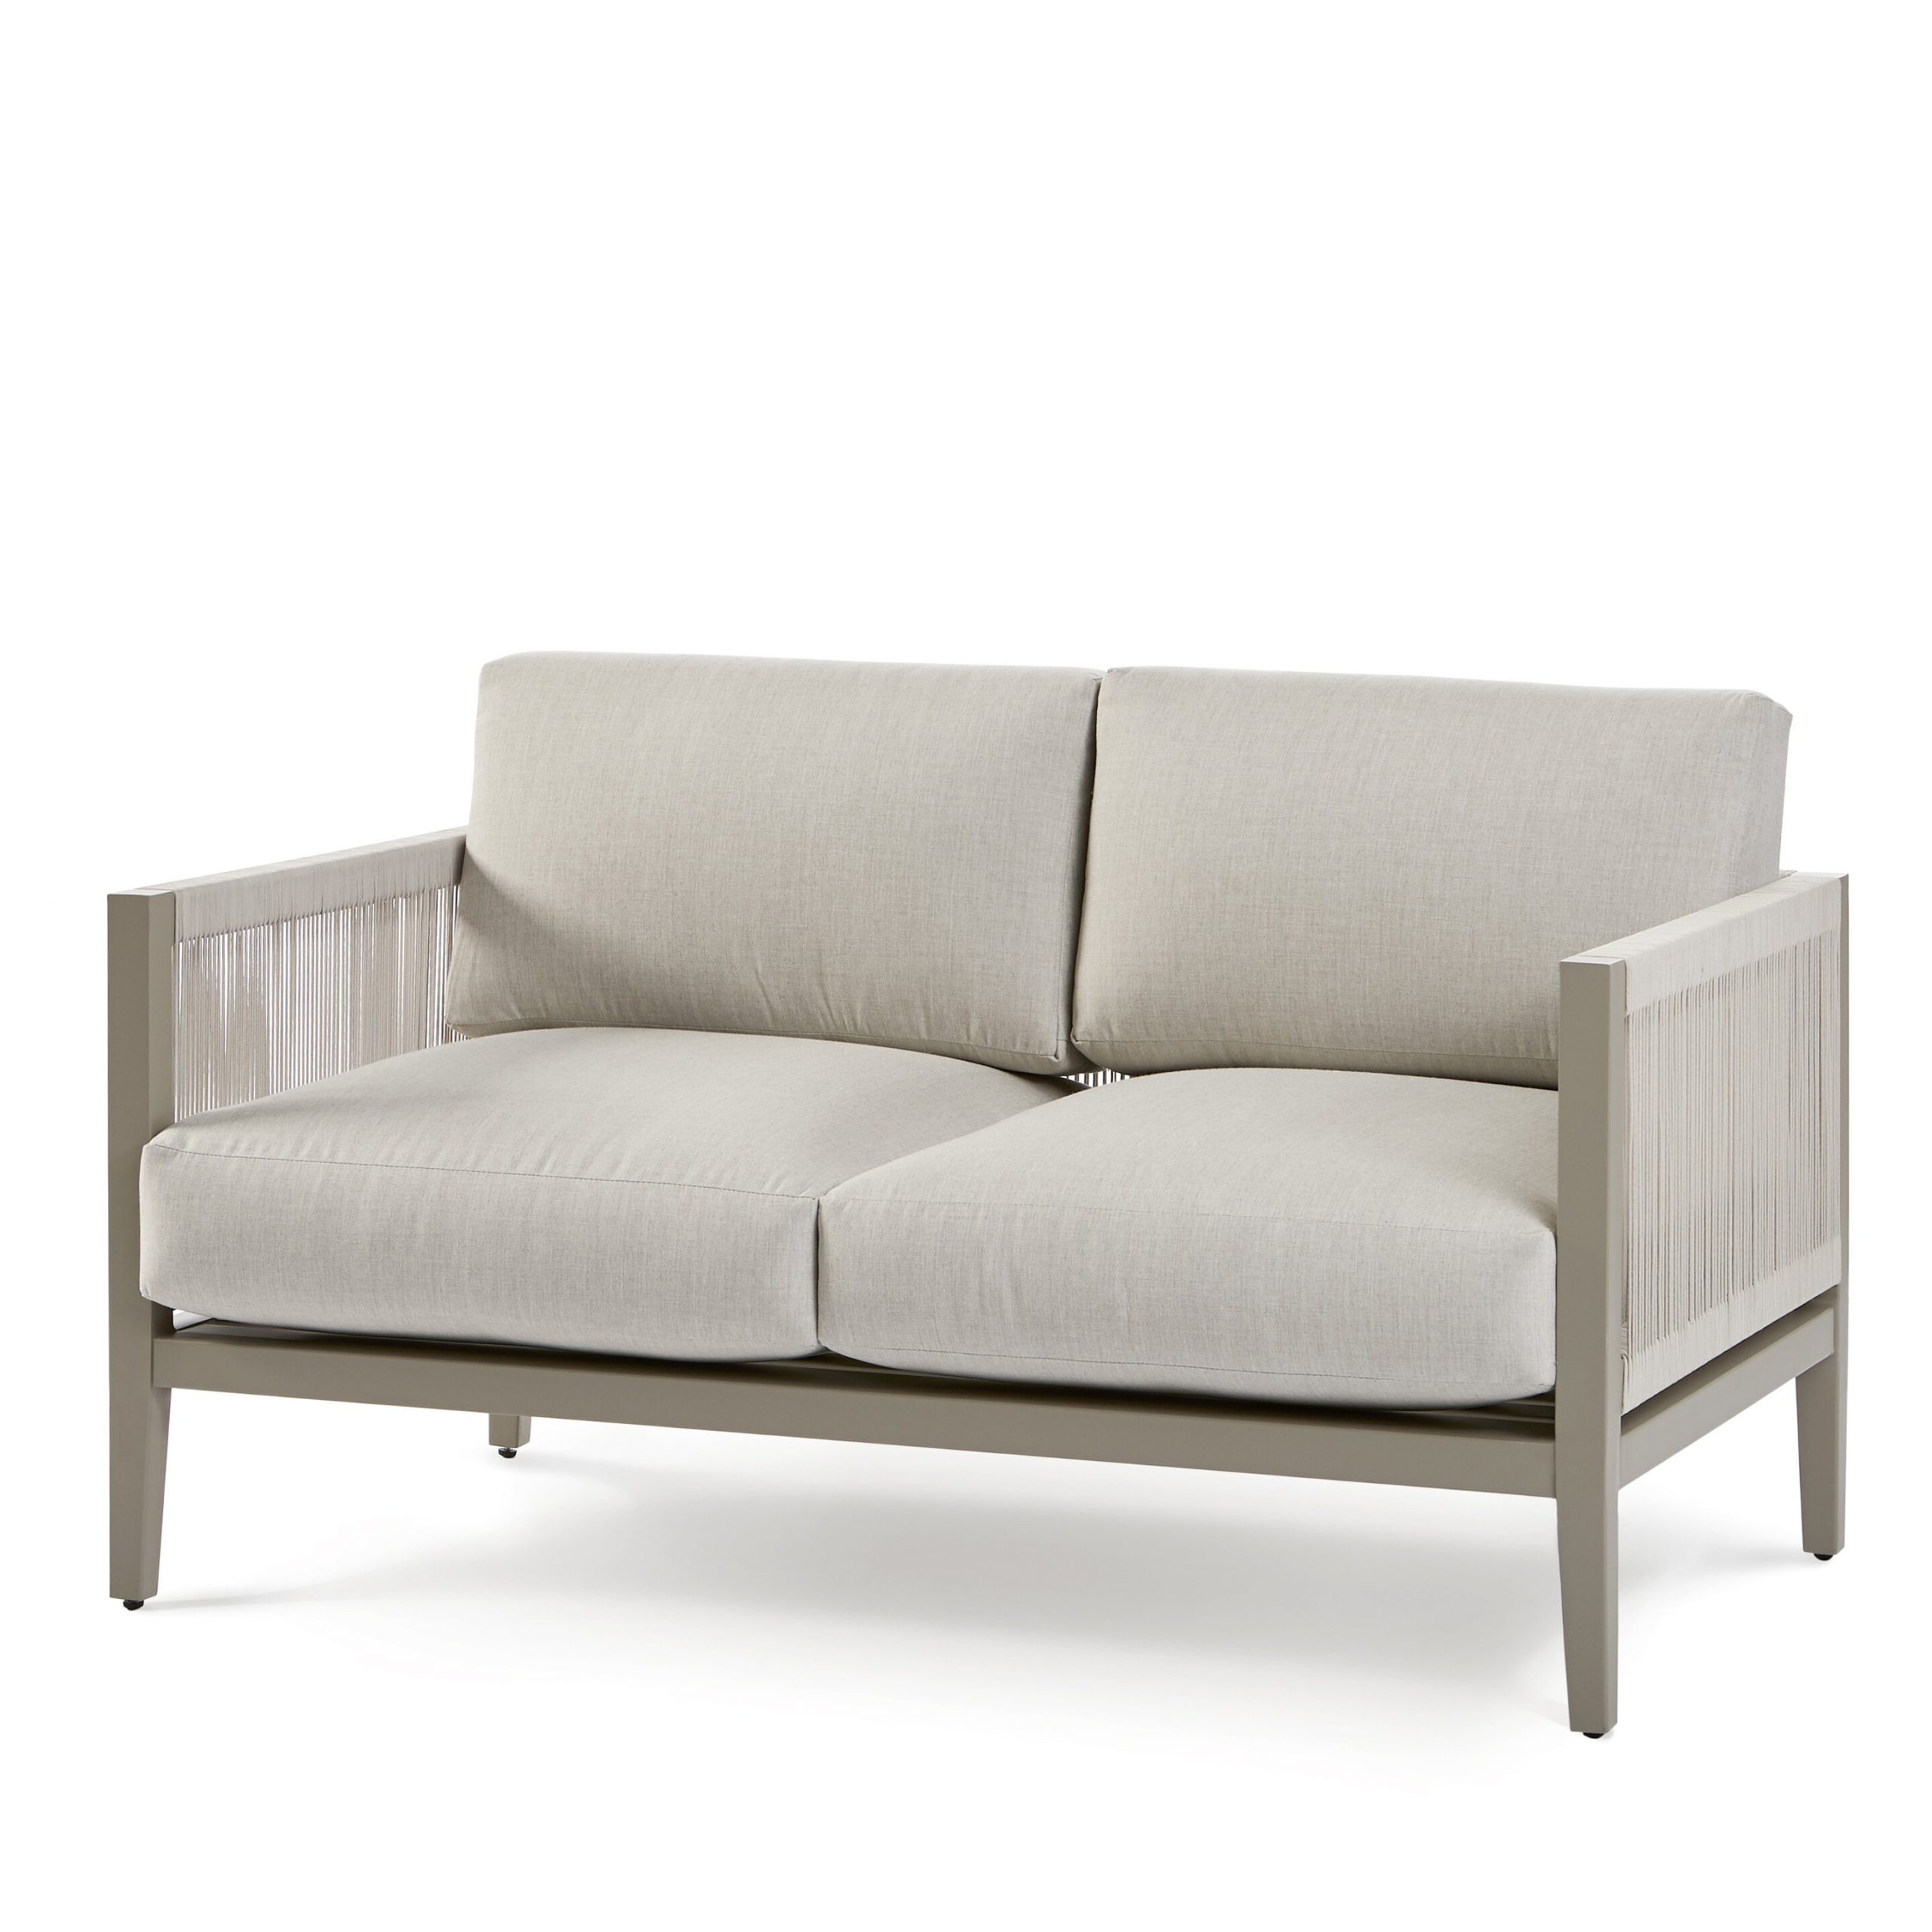 Kari Loveseat With Sunbrella Cushions In Famous Baca Patio Sofas With Cushions (View 15 of 25)